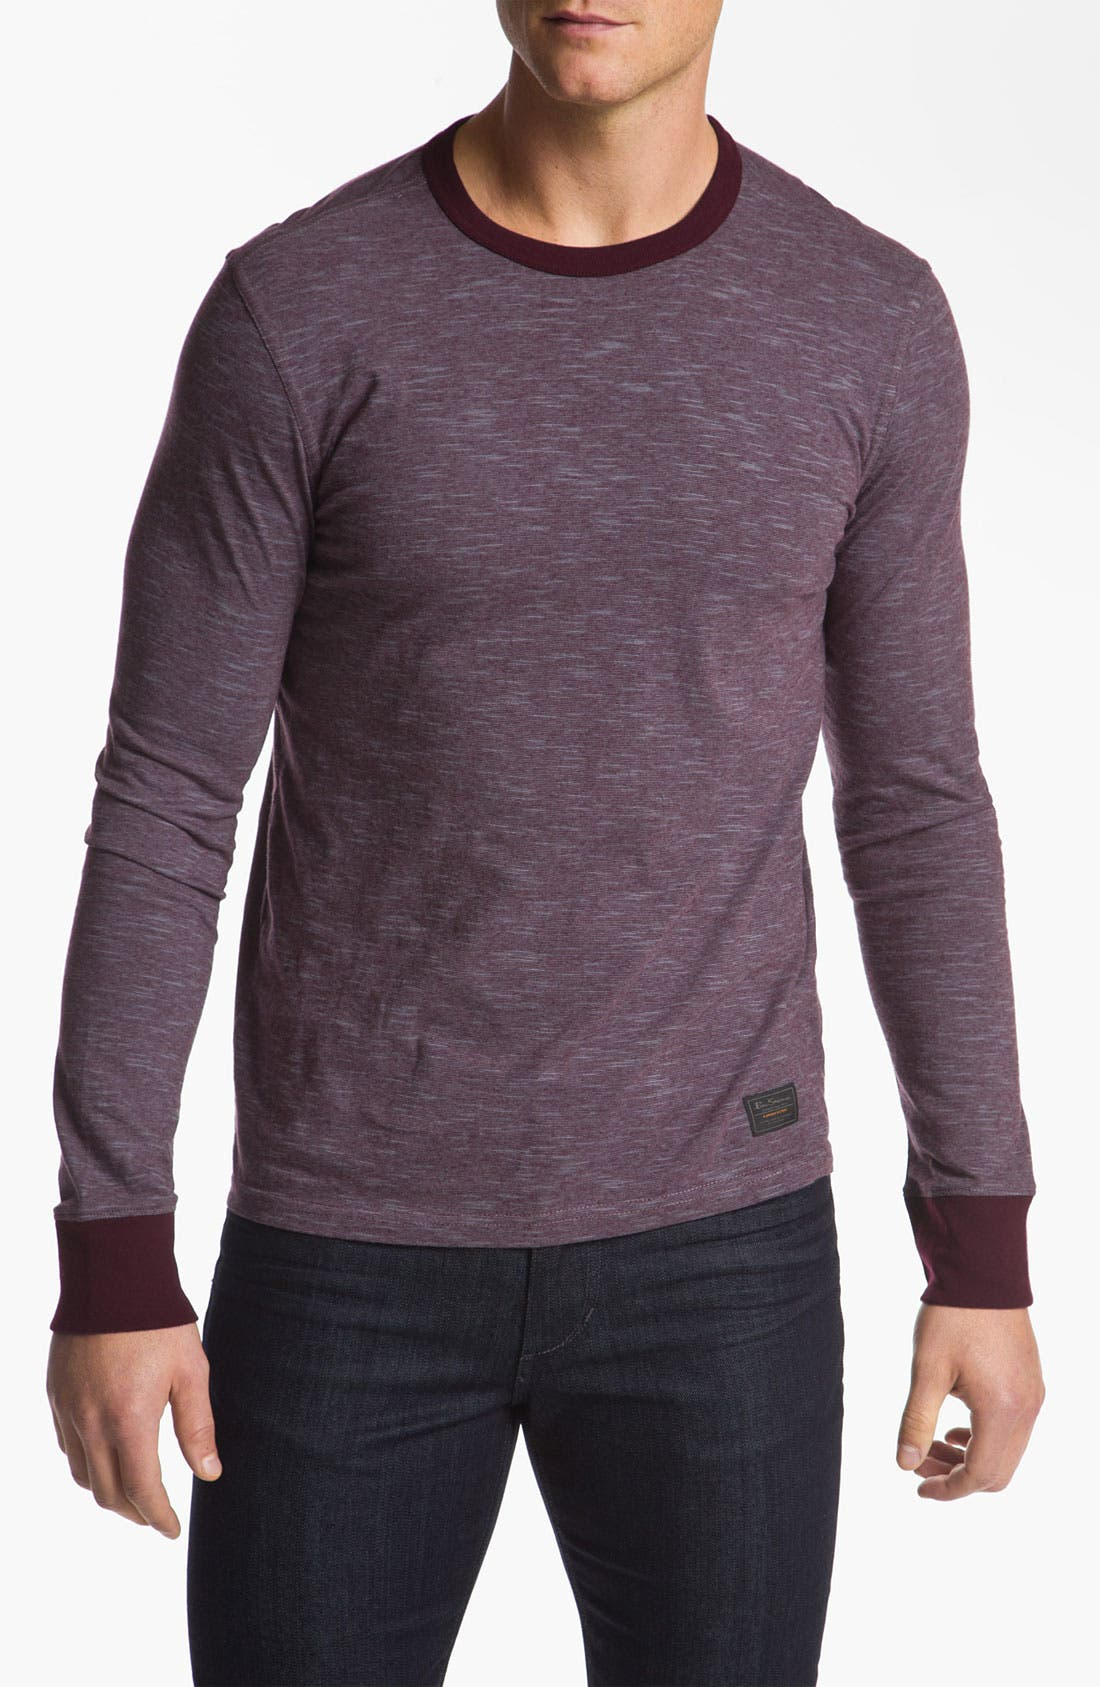 Alternate Image 1 Selected - Ben Sherman Crewneck Shirt